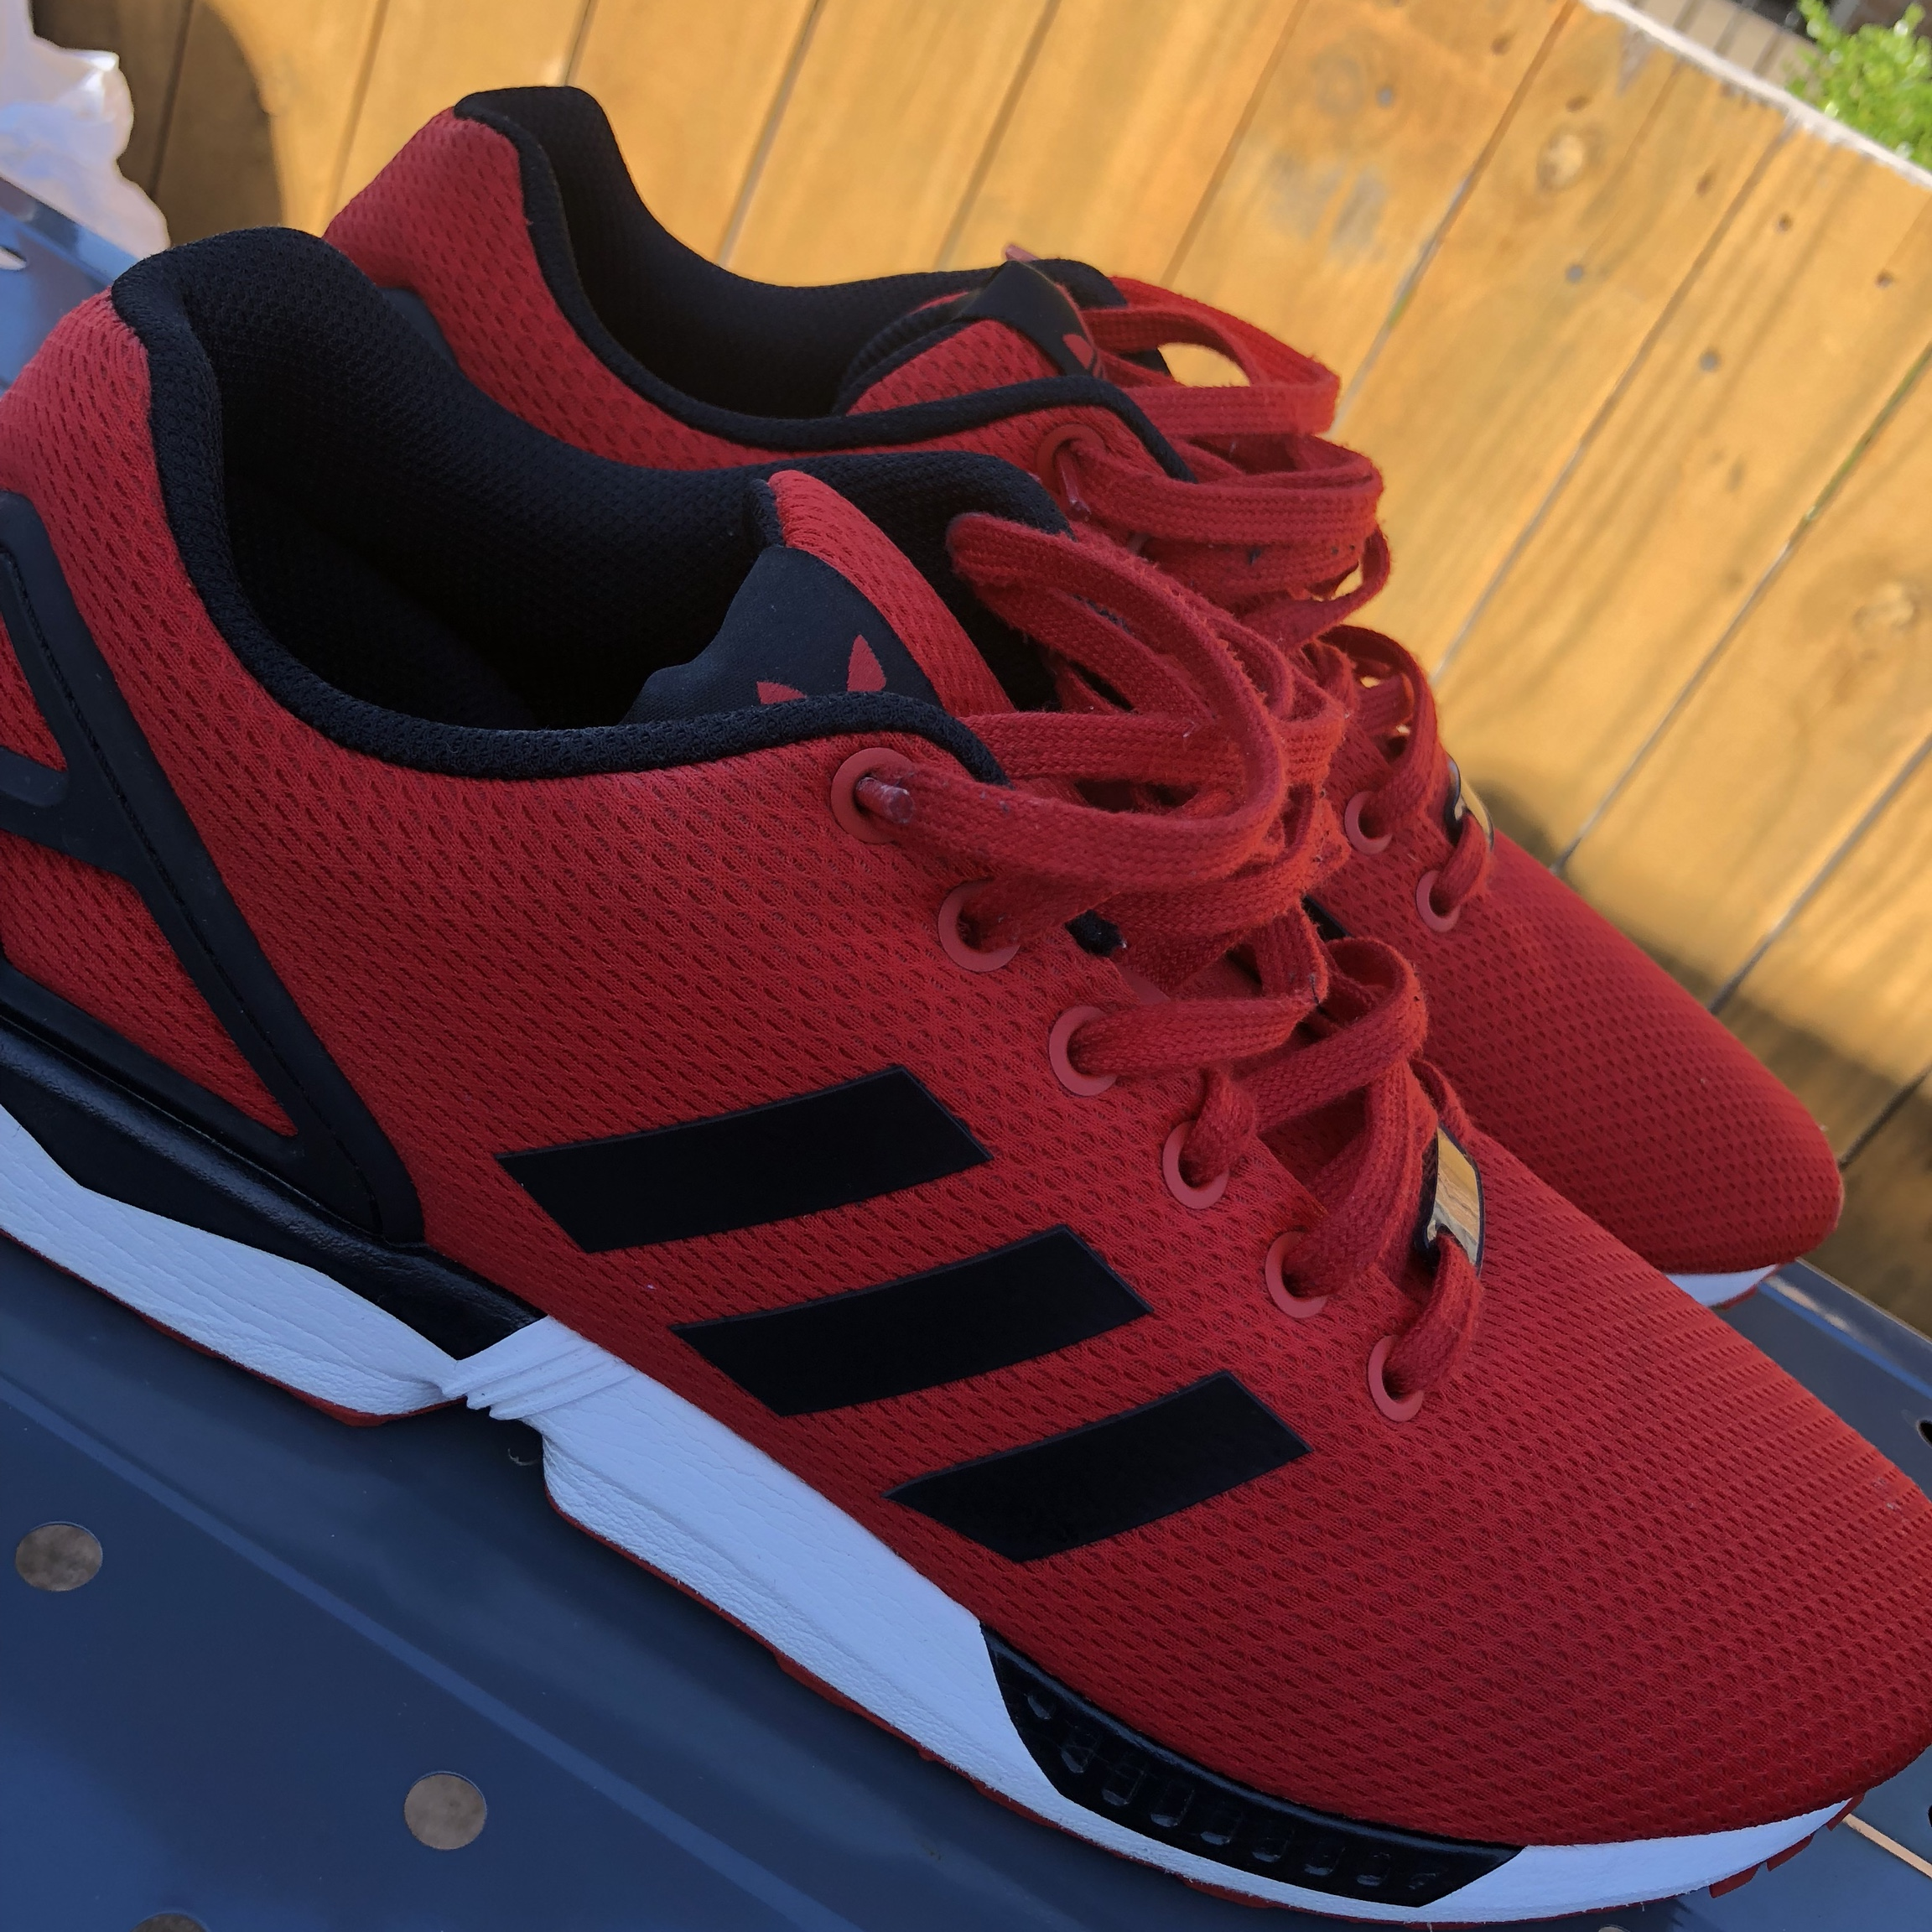 100% authentic f66d7 1bd0b SOLD‼️‼️ Adidas Torsion, red with black Adidas lines ...